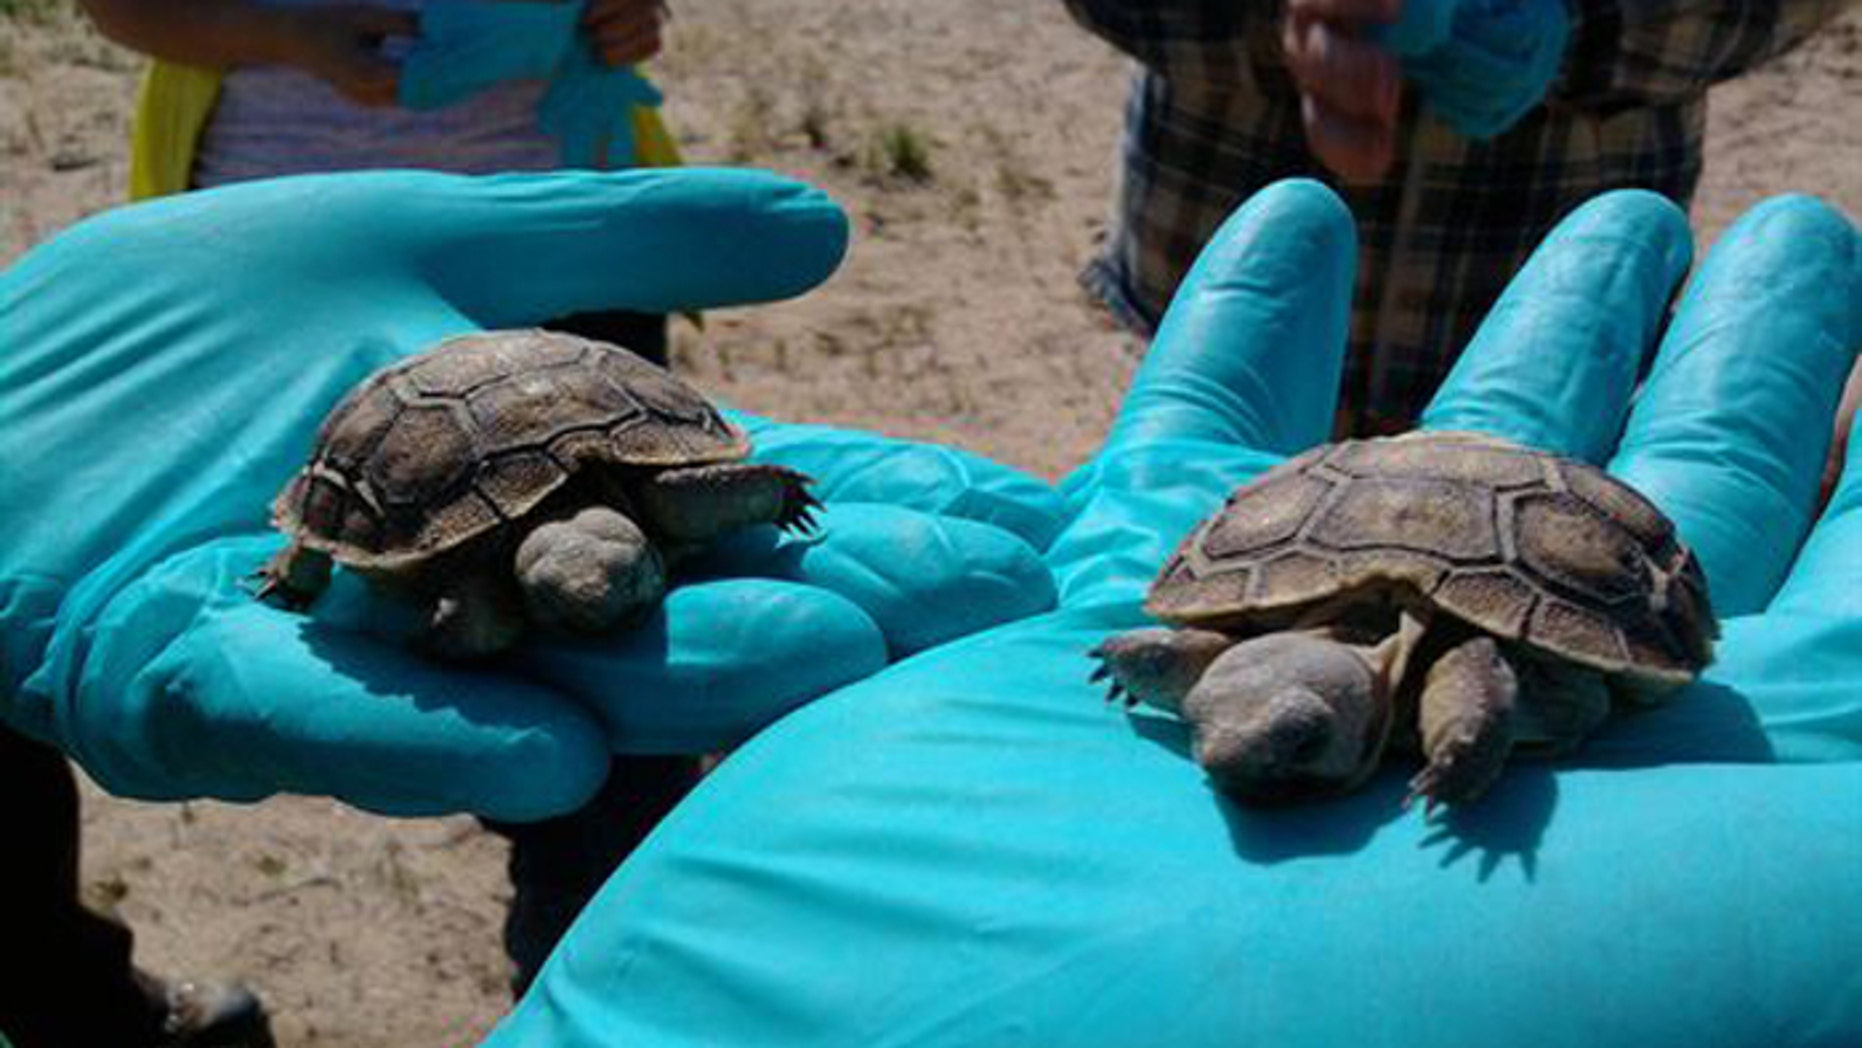 The tortoises are in the way of the Marines' planned expansion of a combat training grounds. (US Marine Corps)